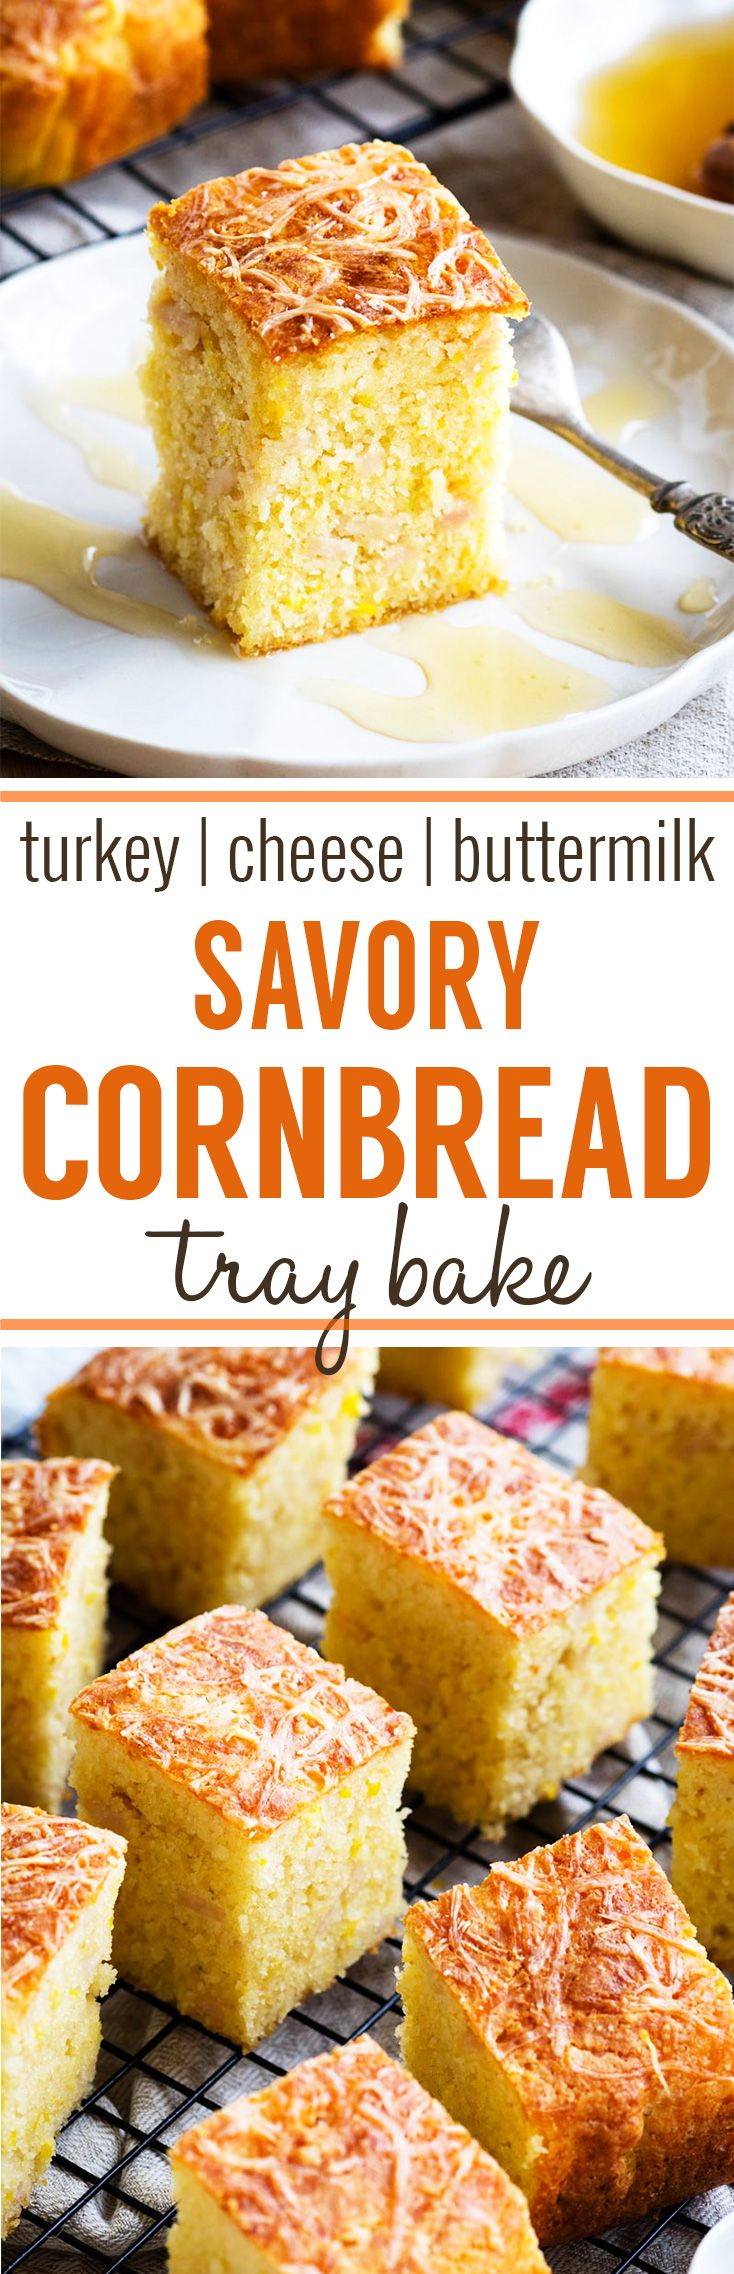 Savory Cornbread with Turkey and Cheese - this savory cornbread tray bake is perfect for feeding a family or crowd! A delicious Thanksgiving side dish, or serve it for breakfast using leftover turkey. This cornbread is made with buttermilk and corn kernels. #cornbread #thanksgiving #leftoverturkey